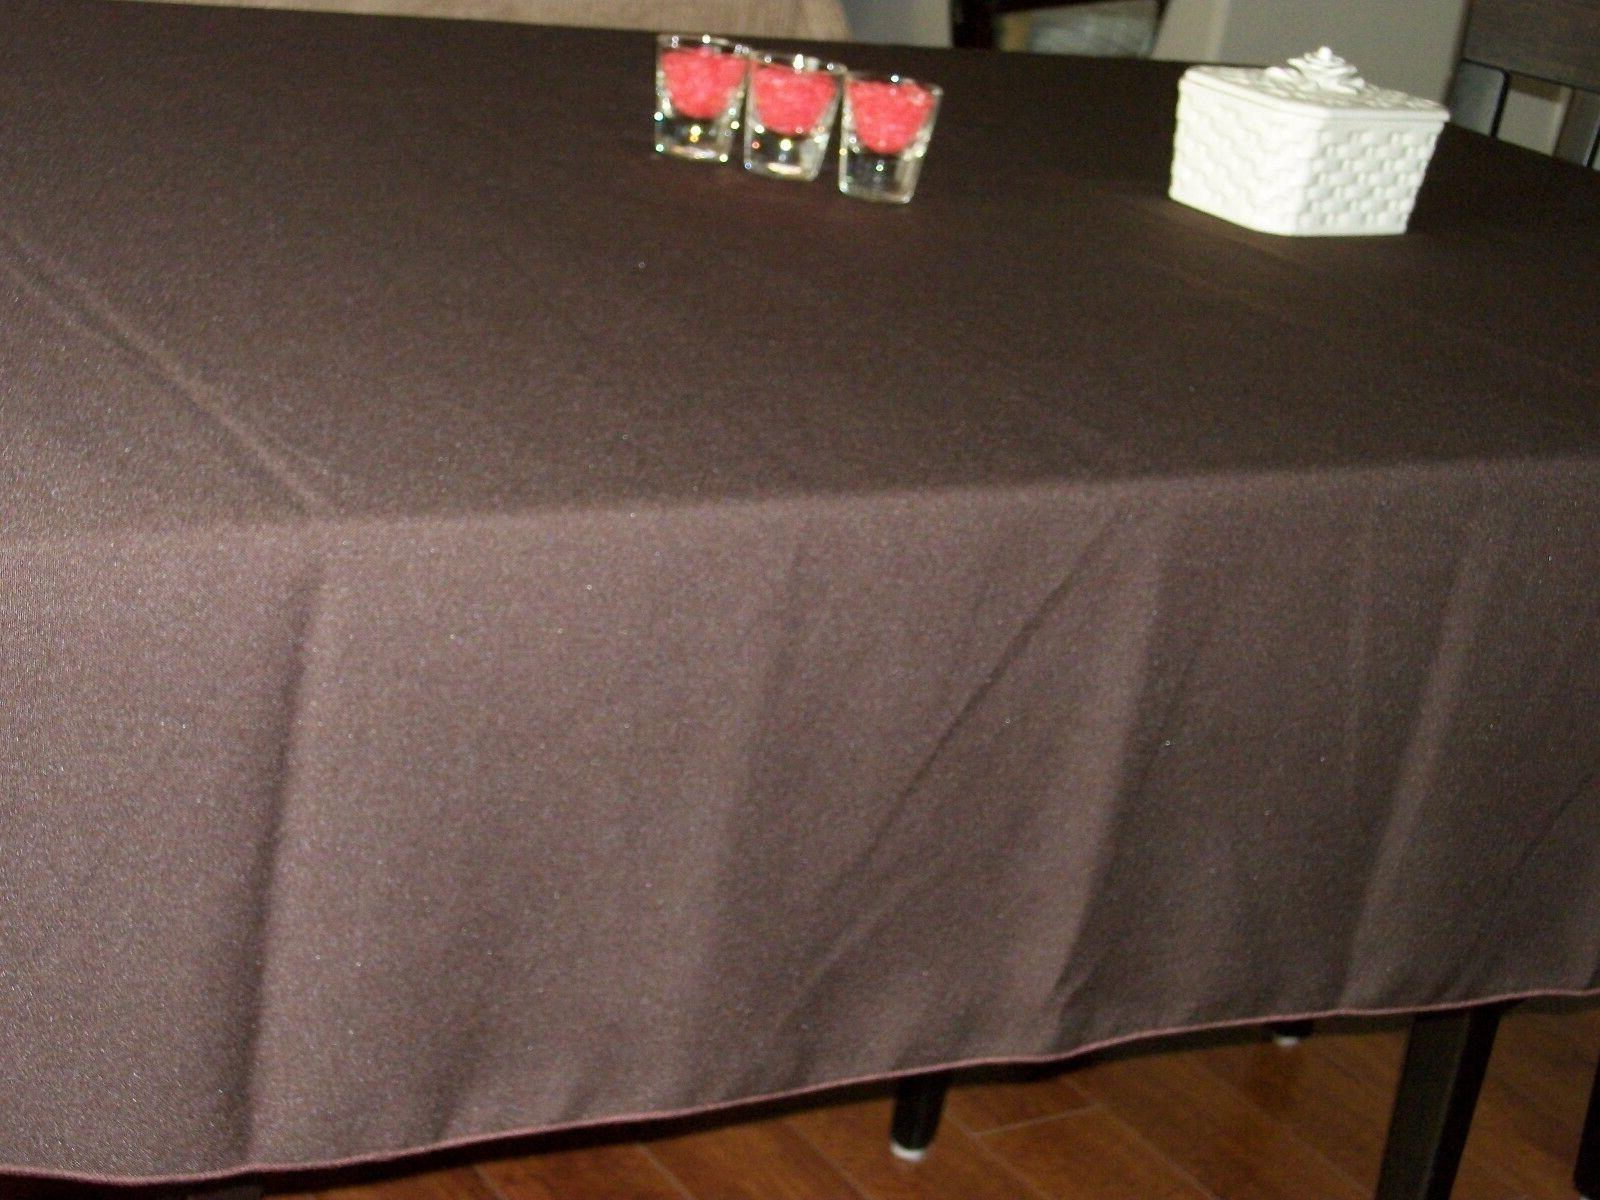 Table 0803 Dining Table Linens Texiles Napkins Cloth